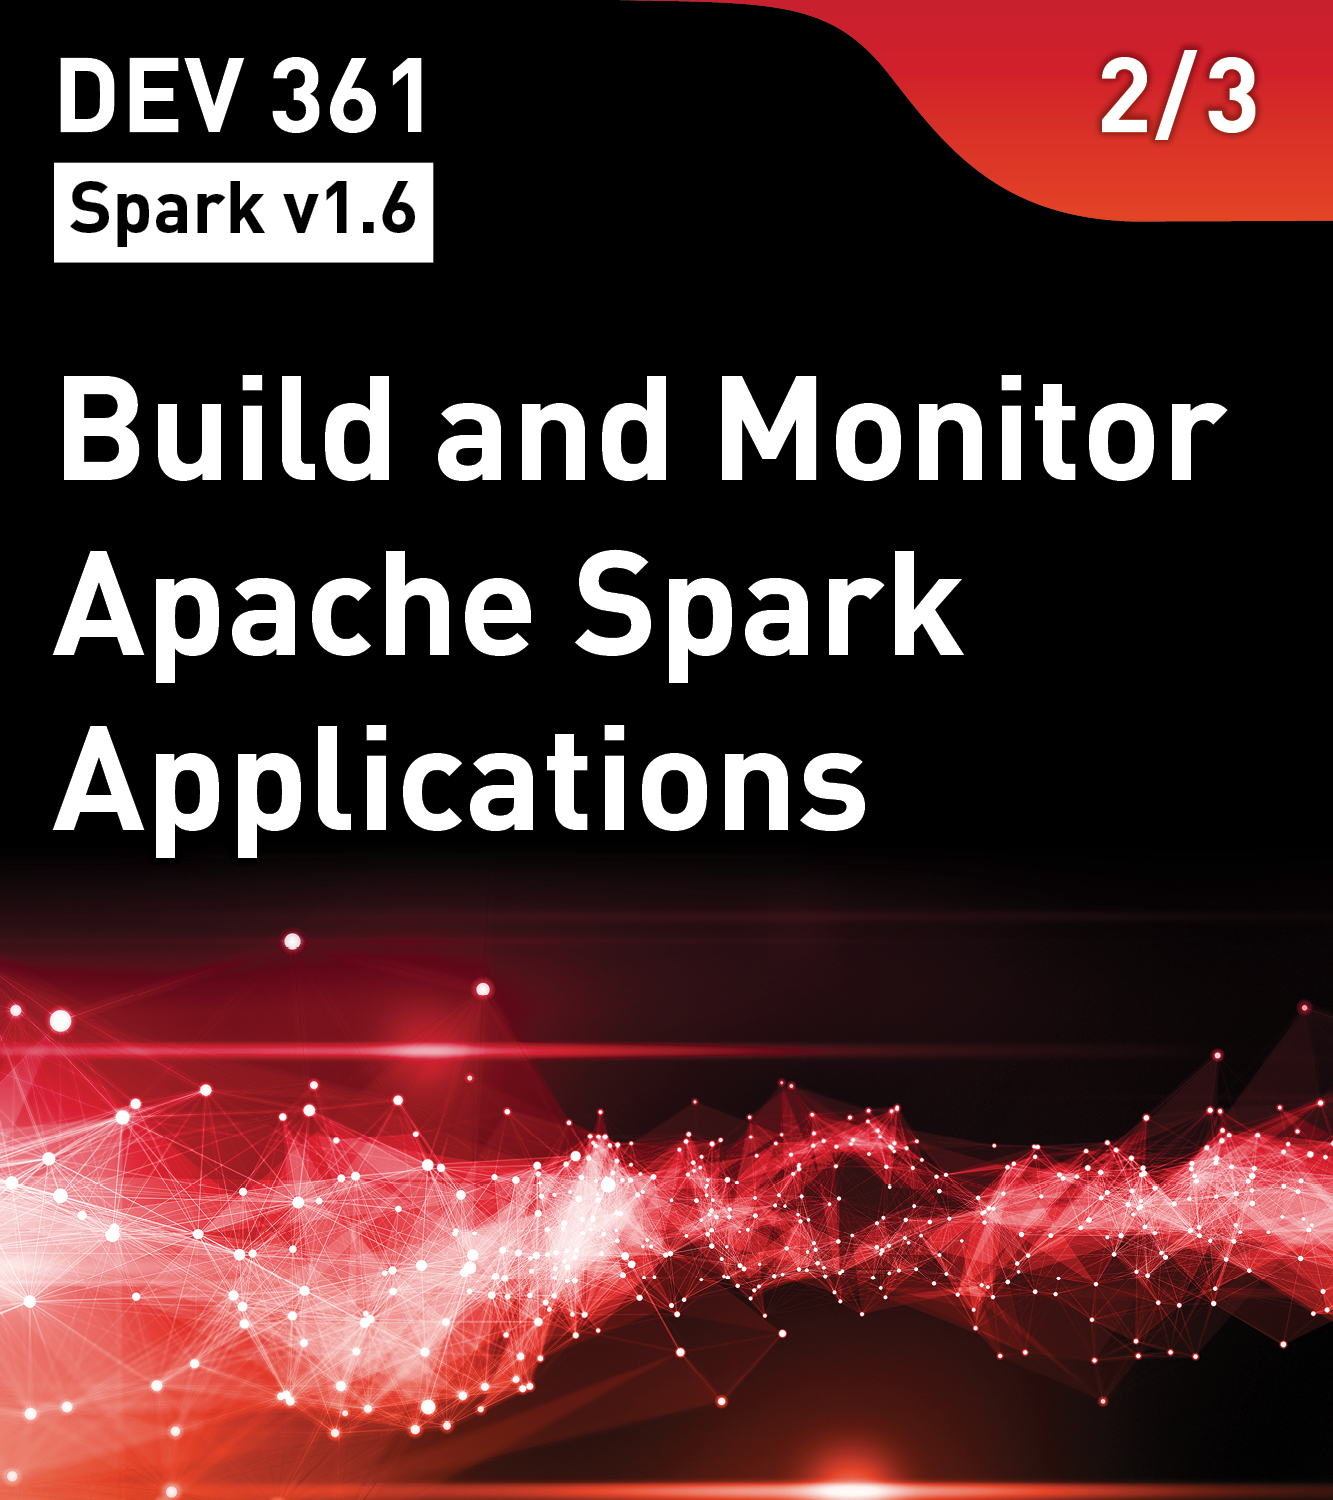 DEV 361 - Build and Monitor Apache Spark Applications (Spark v1.6)